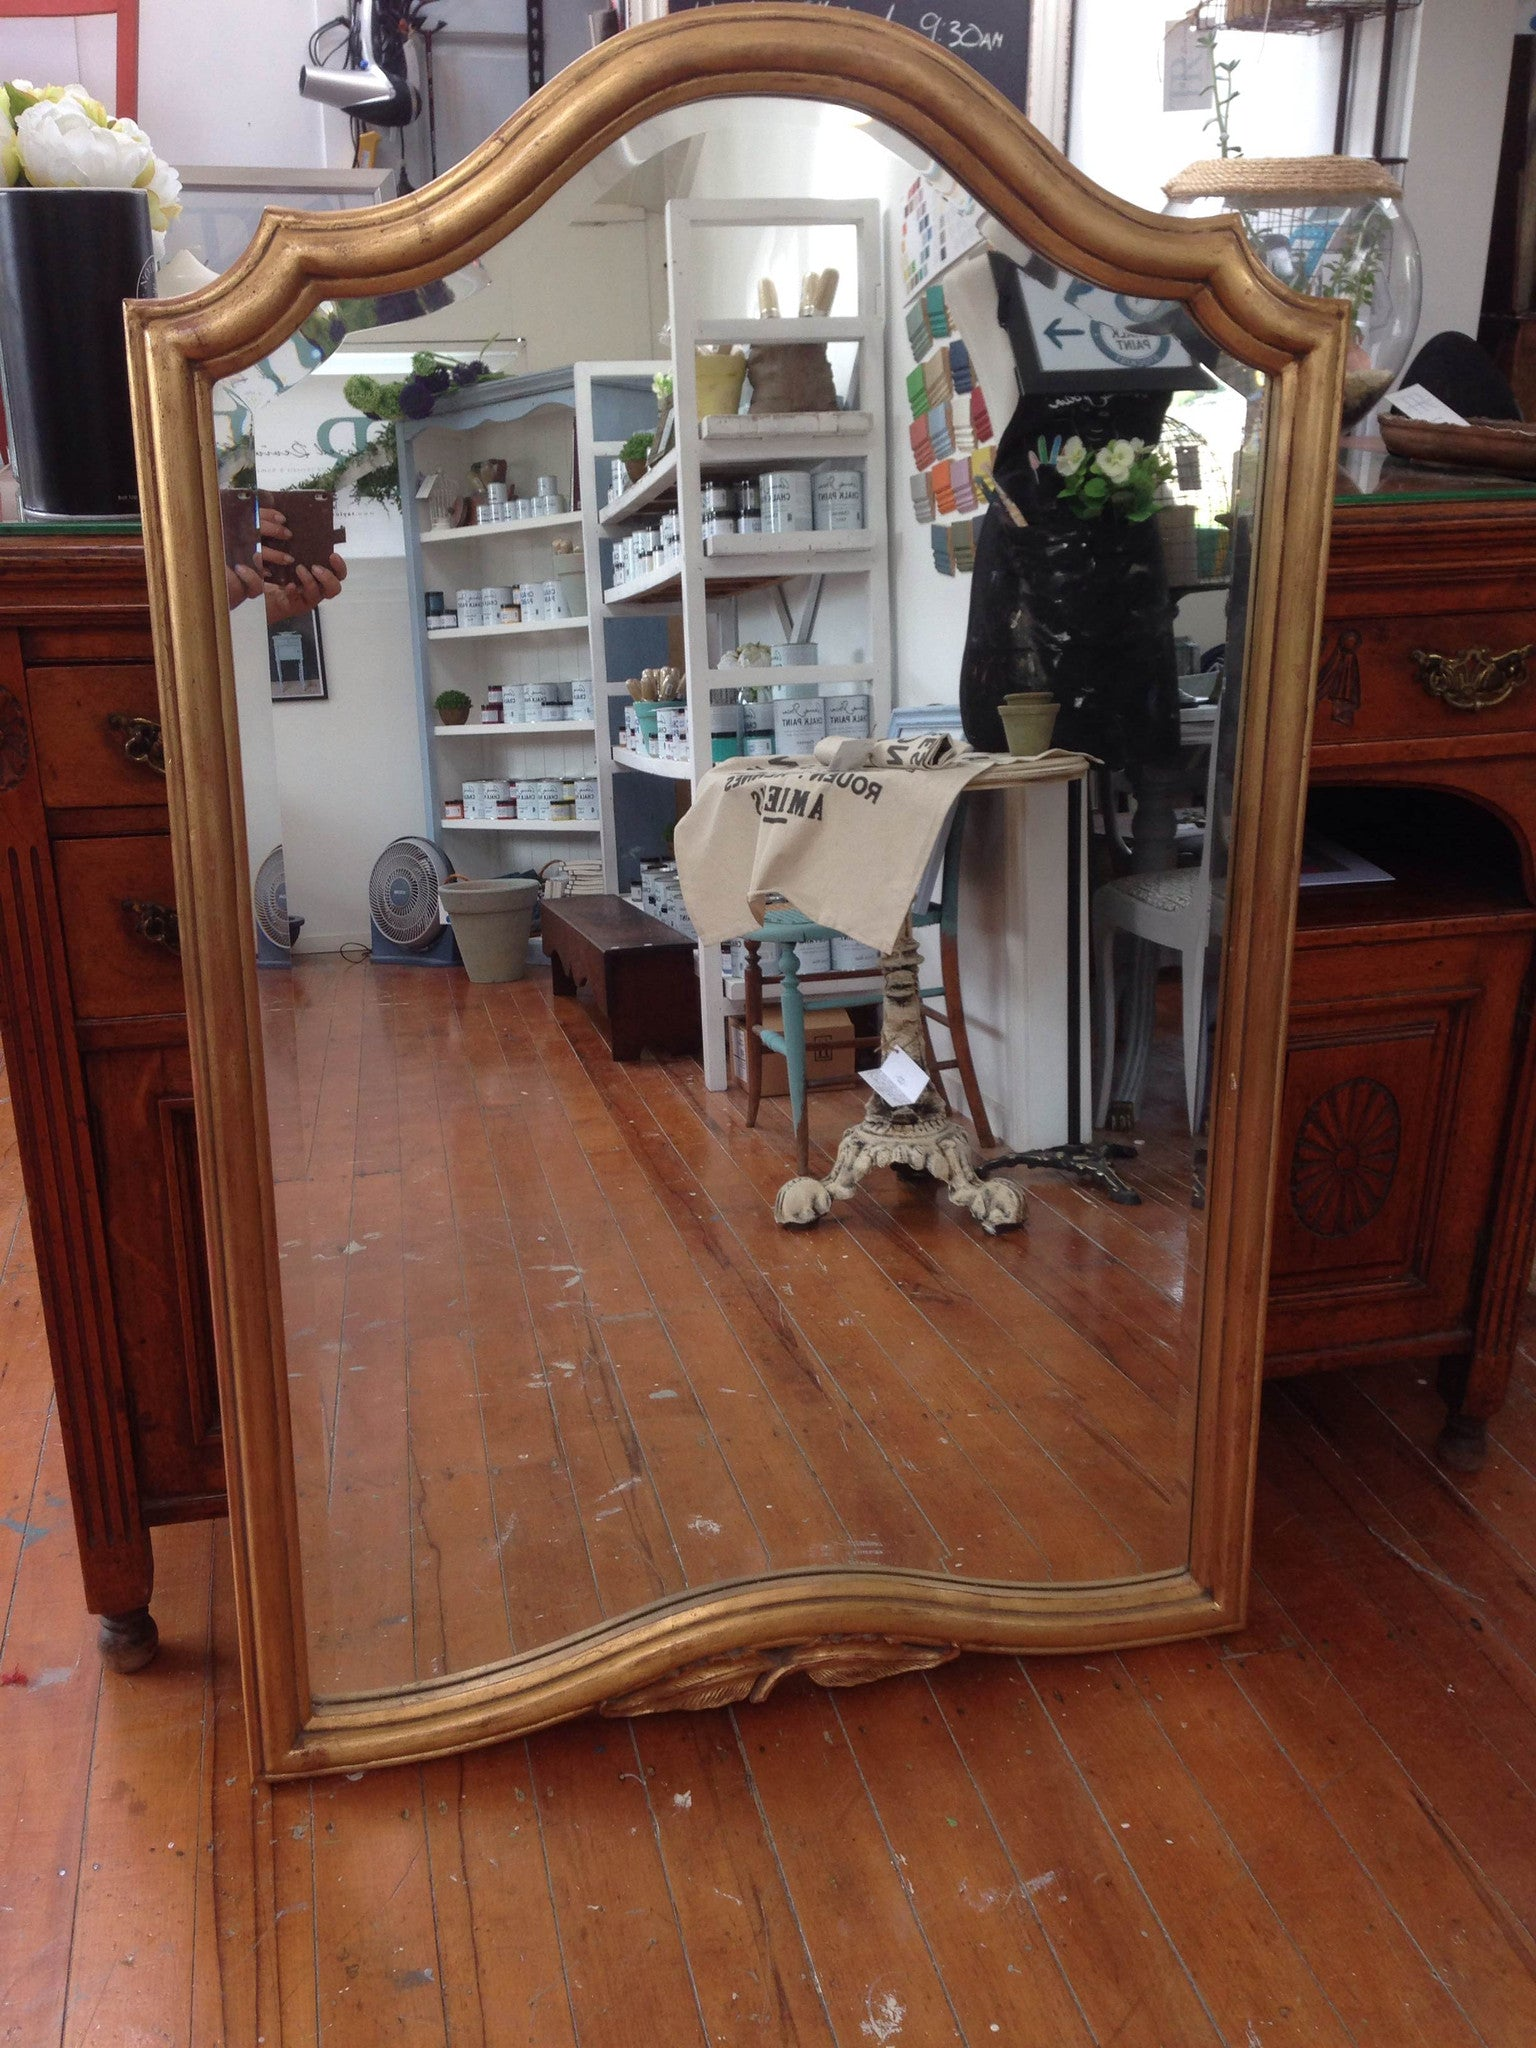 Commissioned Mirror in blended antibes, paris grey and gold